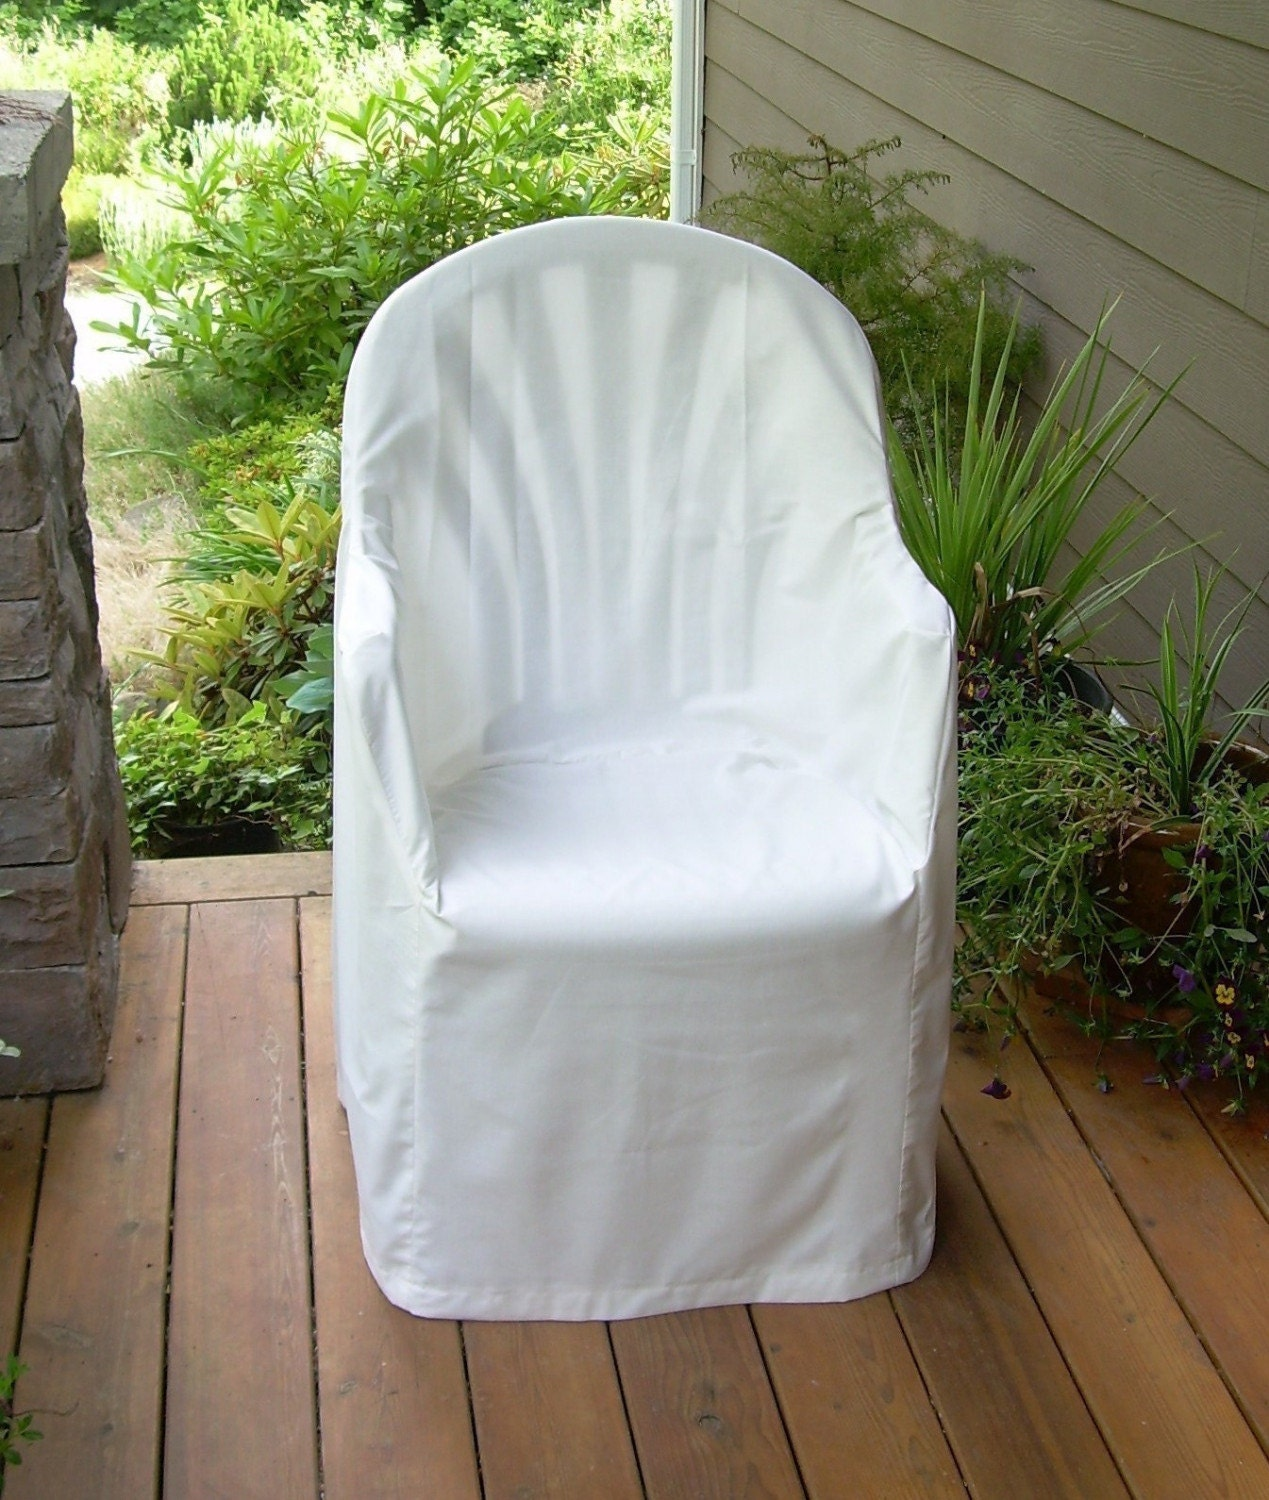 Resin Chair Cover Pattern Stuprelino34s Soup